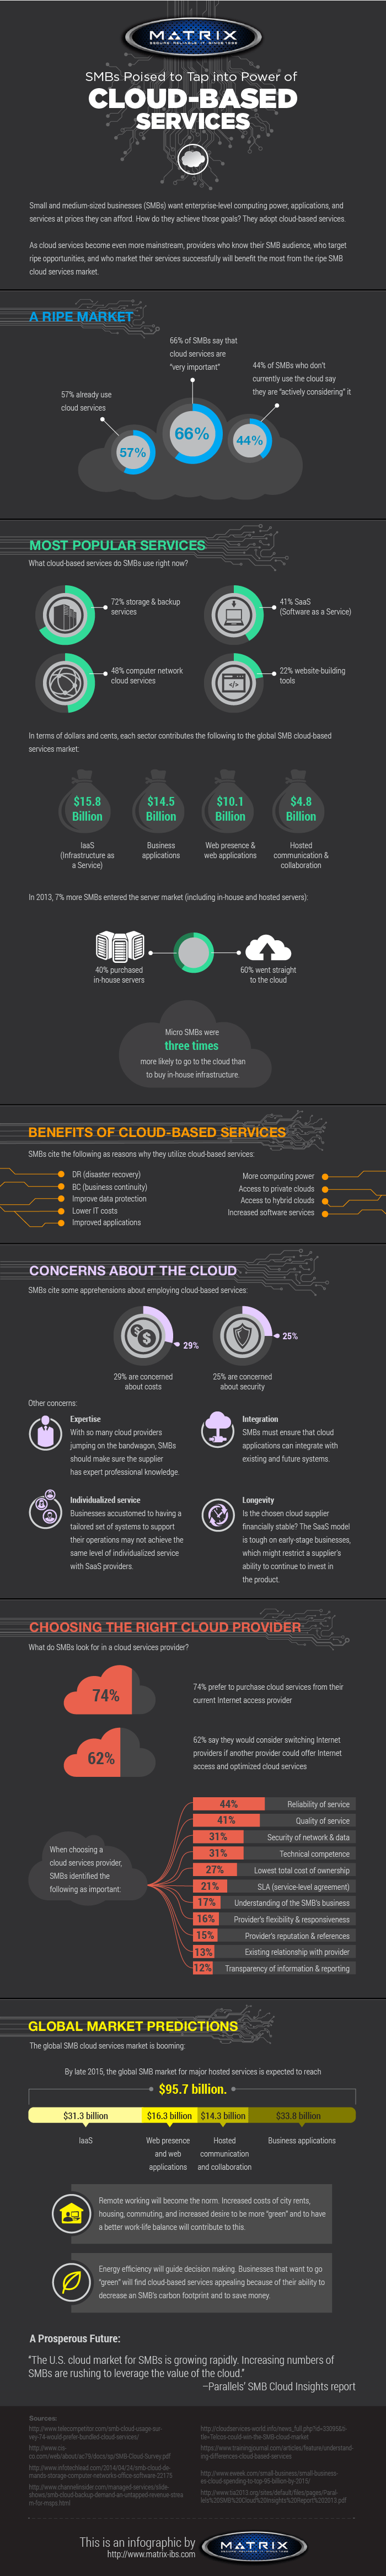 smbs poised to tap power cloud based services